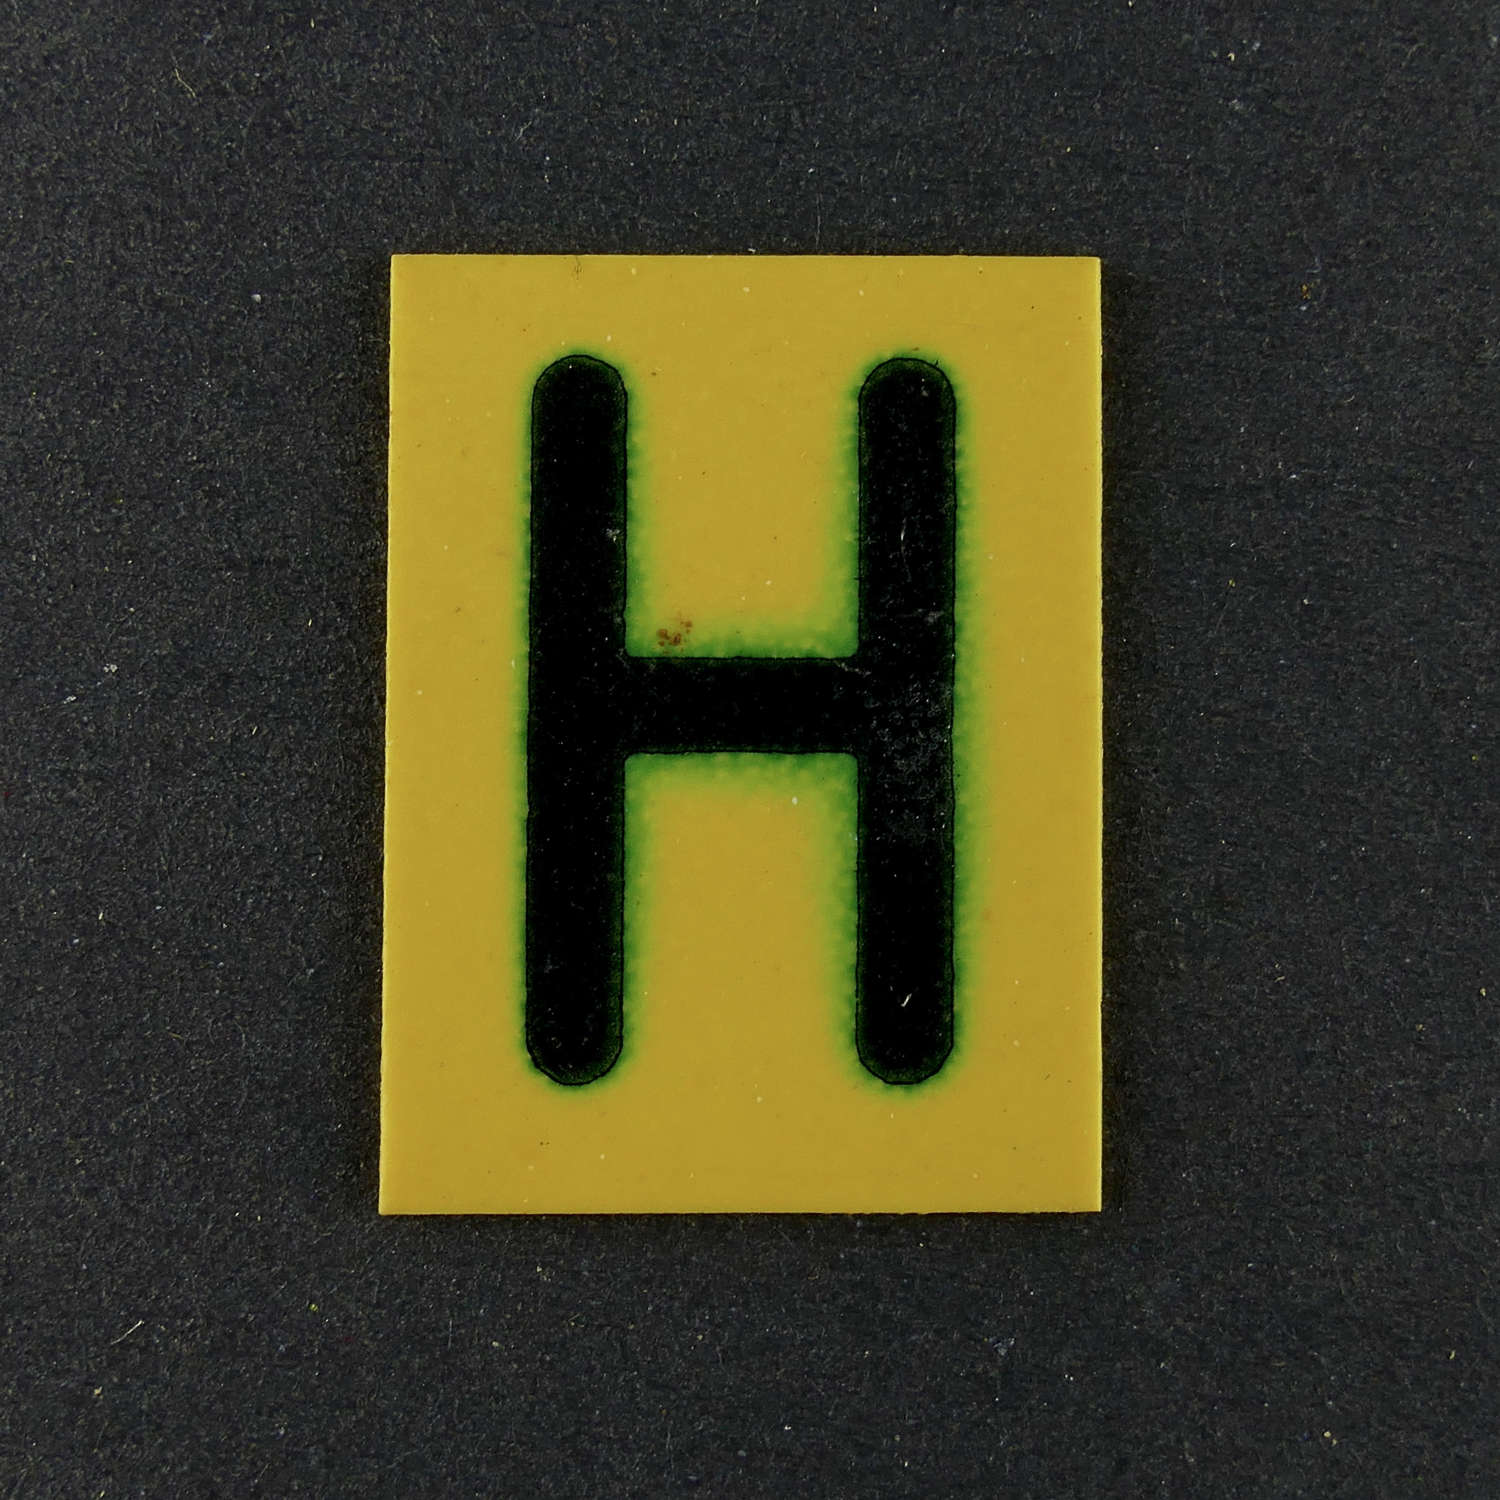 RAF operations room raid block tile, 'H'